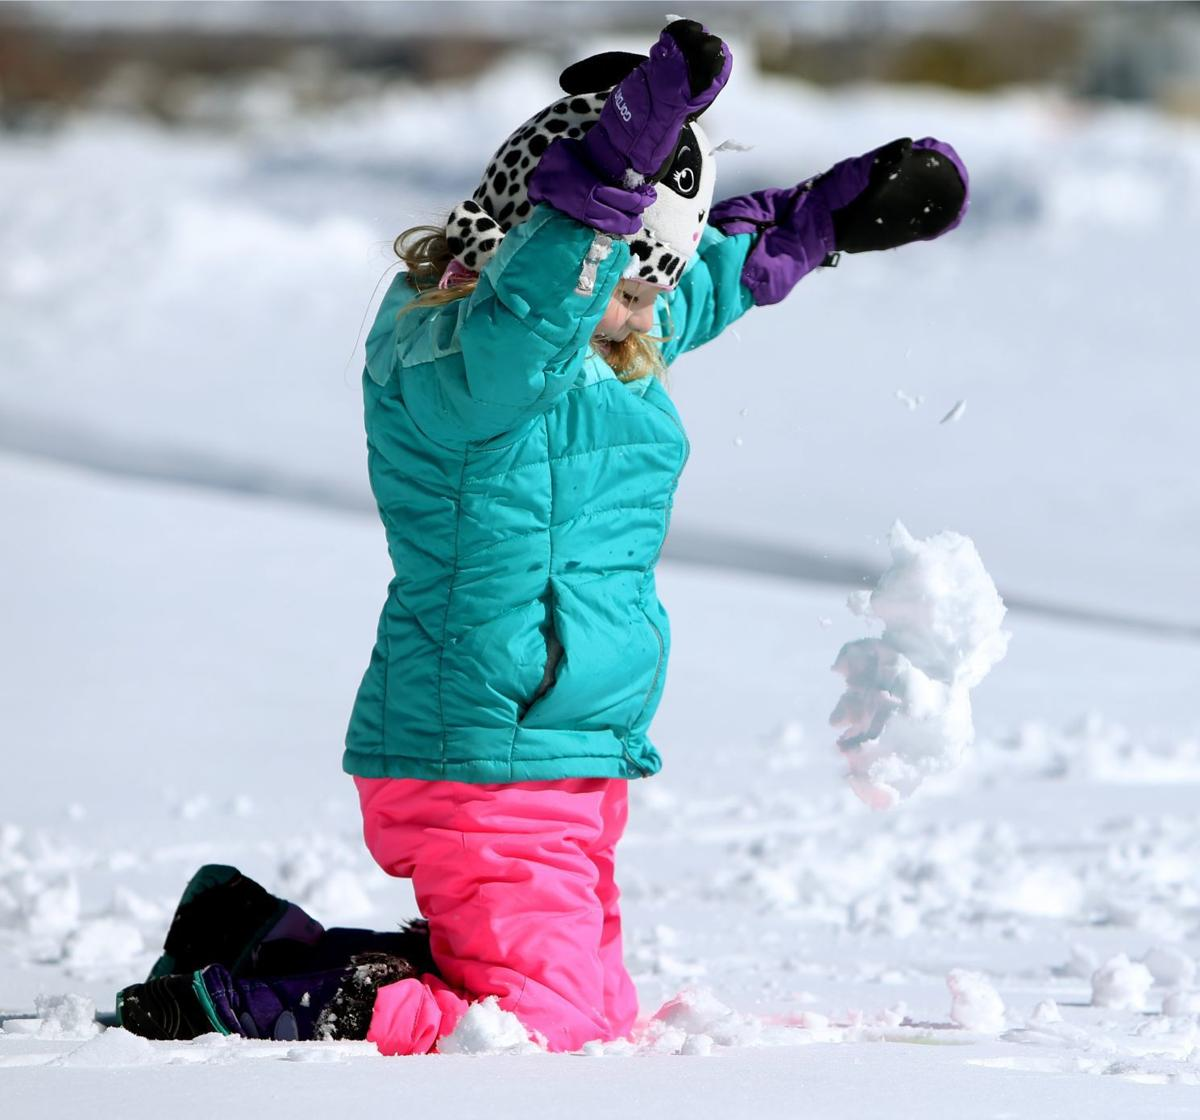 Madelyln Thomassen plays in the snow